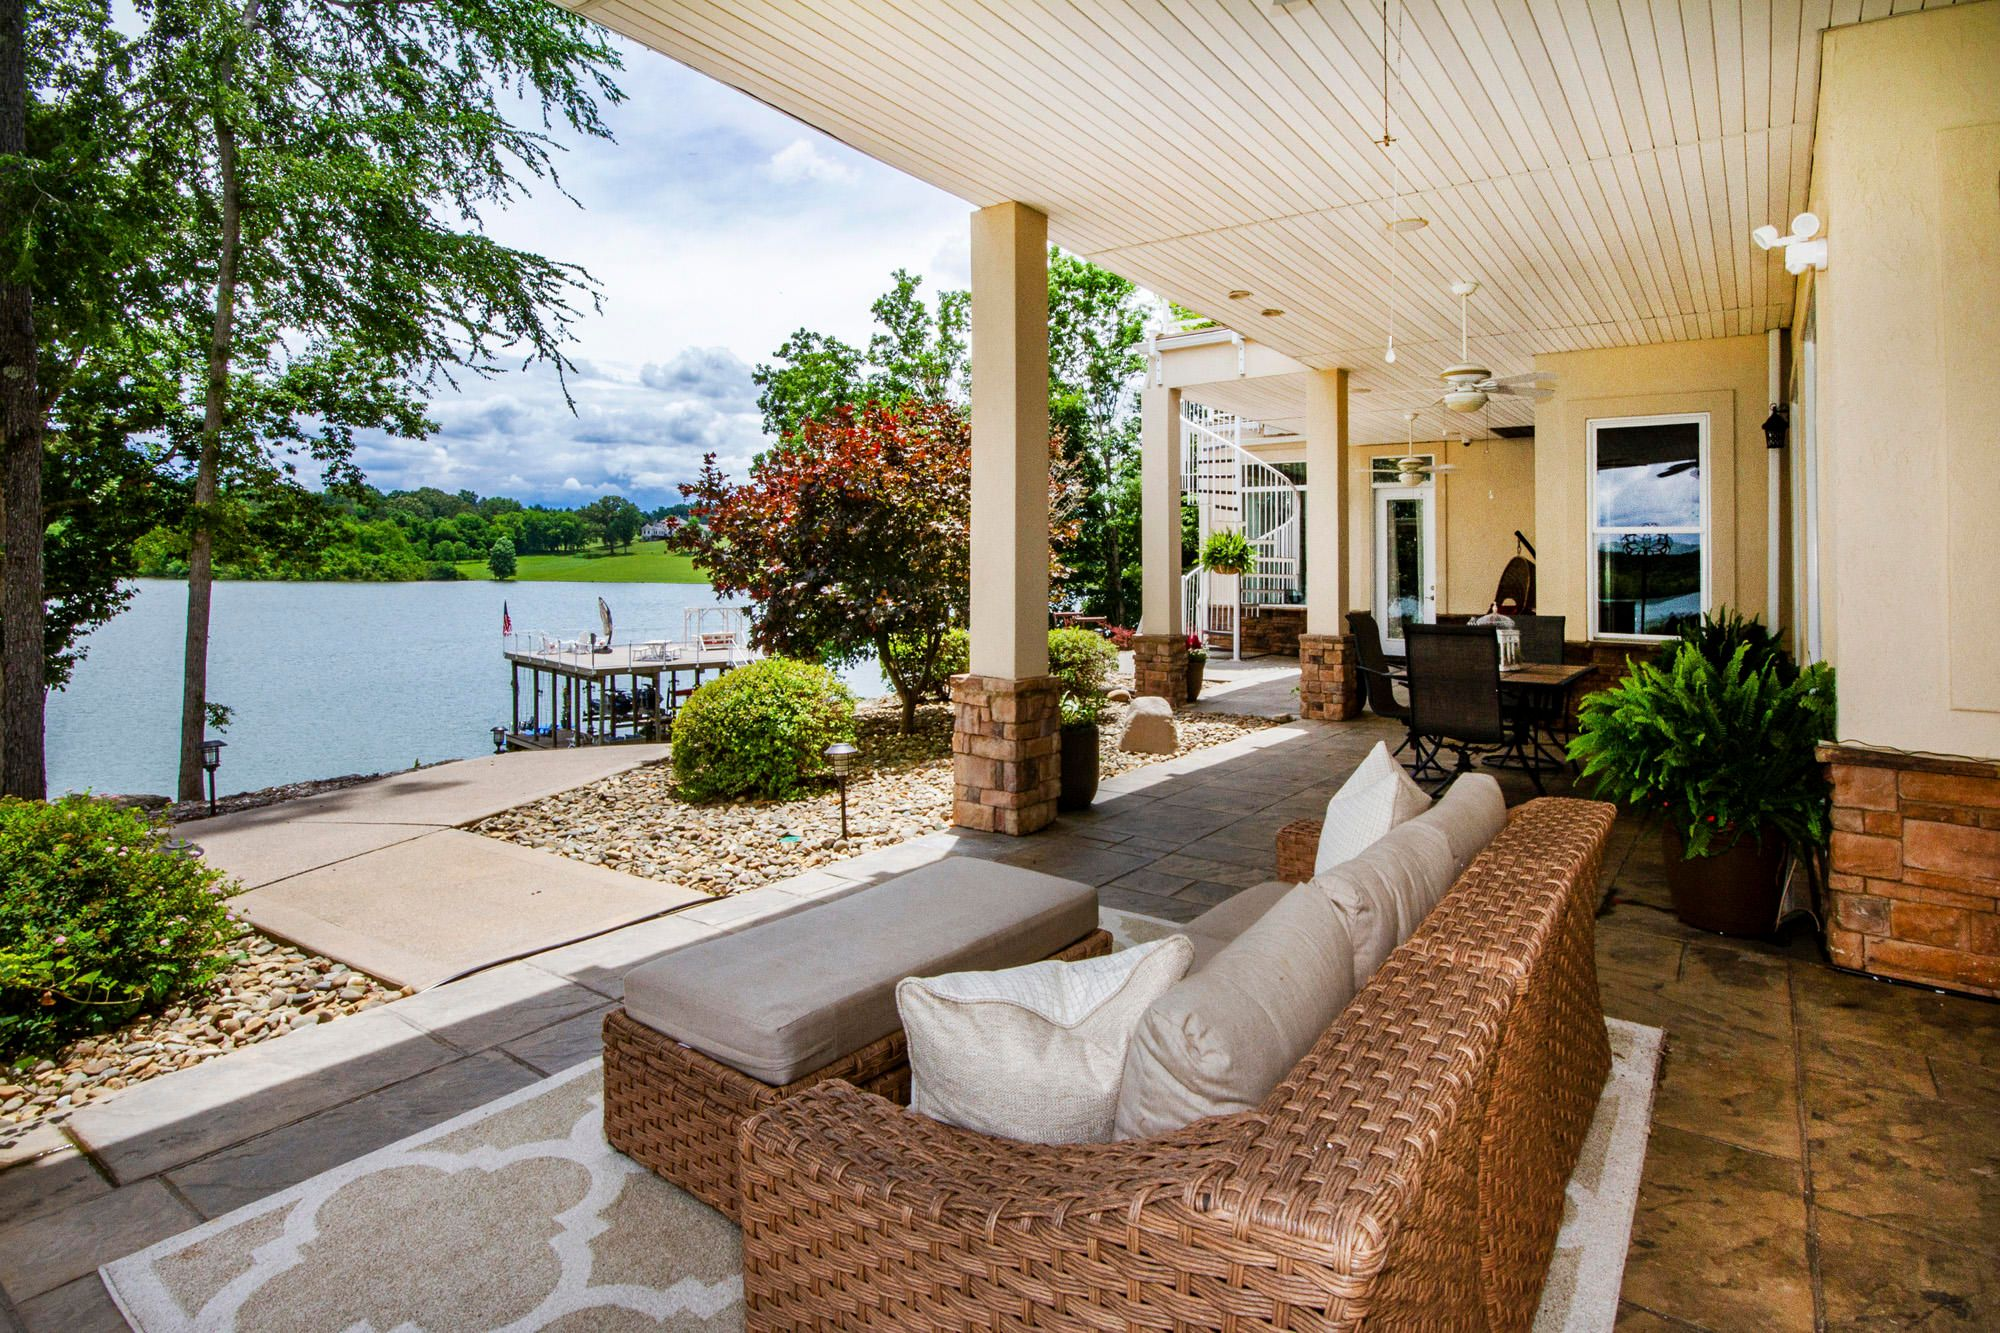 Enjoy the Covered Patio